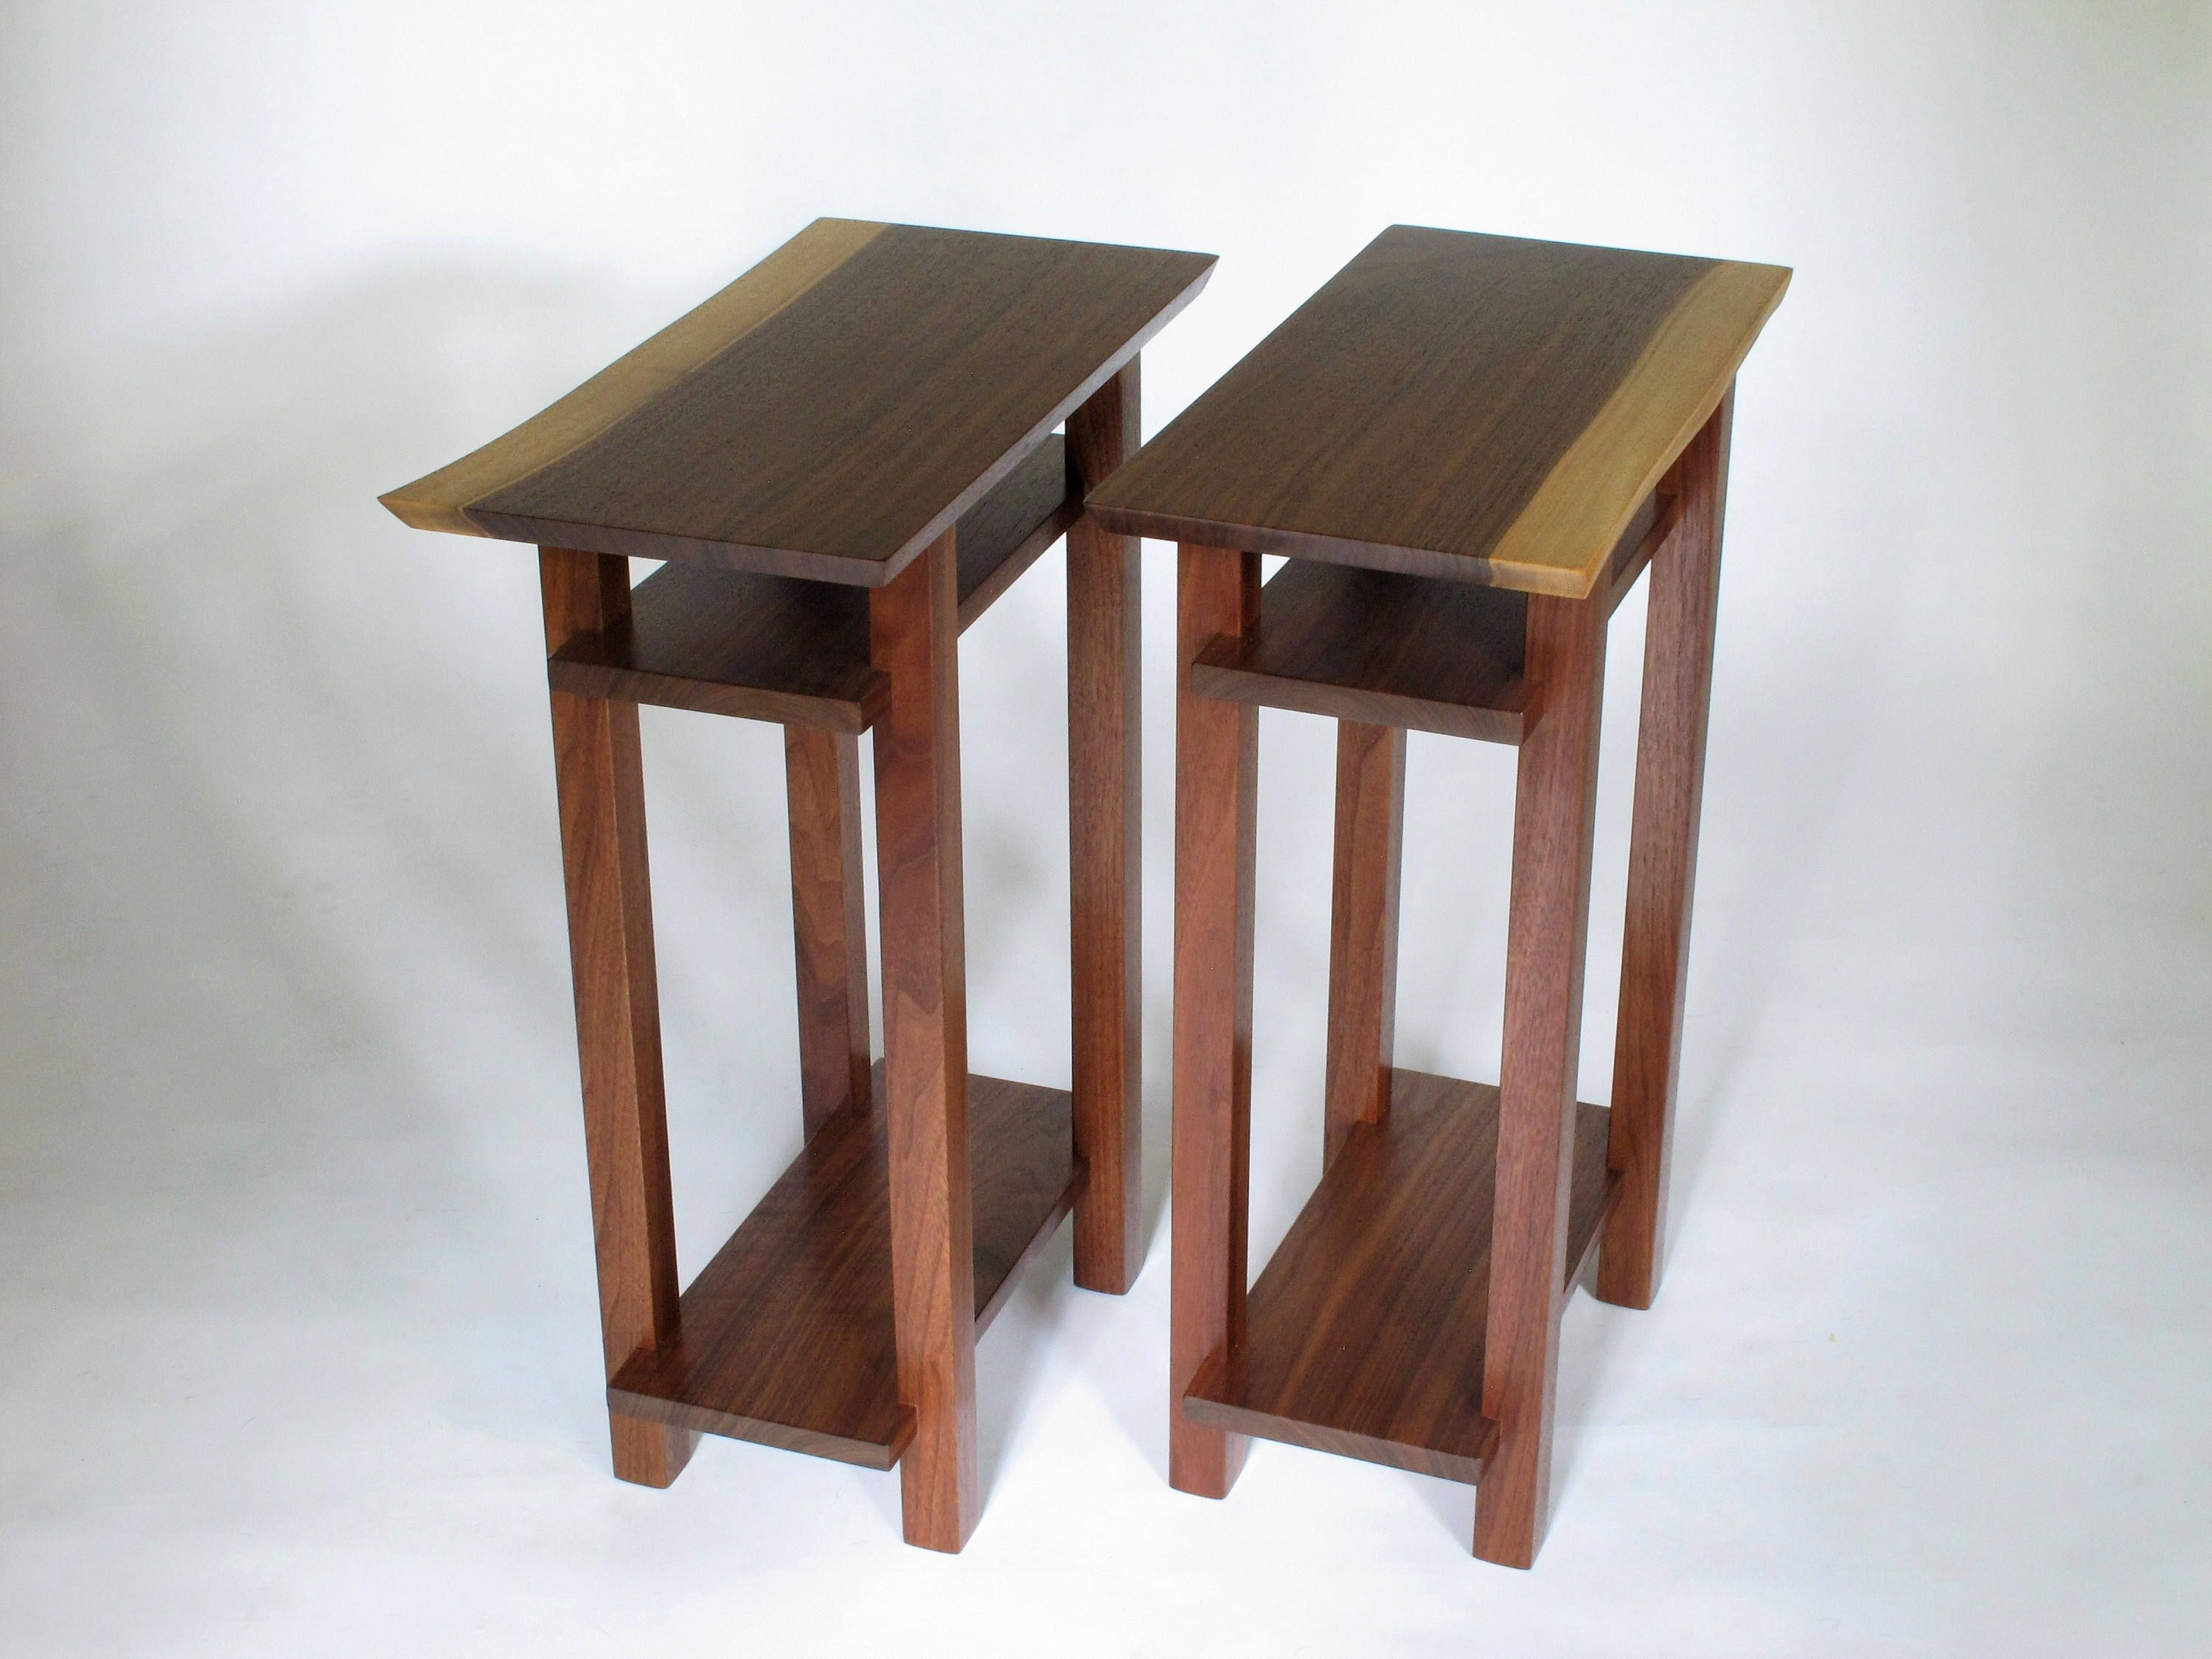 Pair of live edge end tables walnut table set narrow furniture design minimalist modern home decor solid wood tables for small spaces